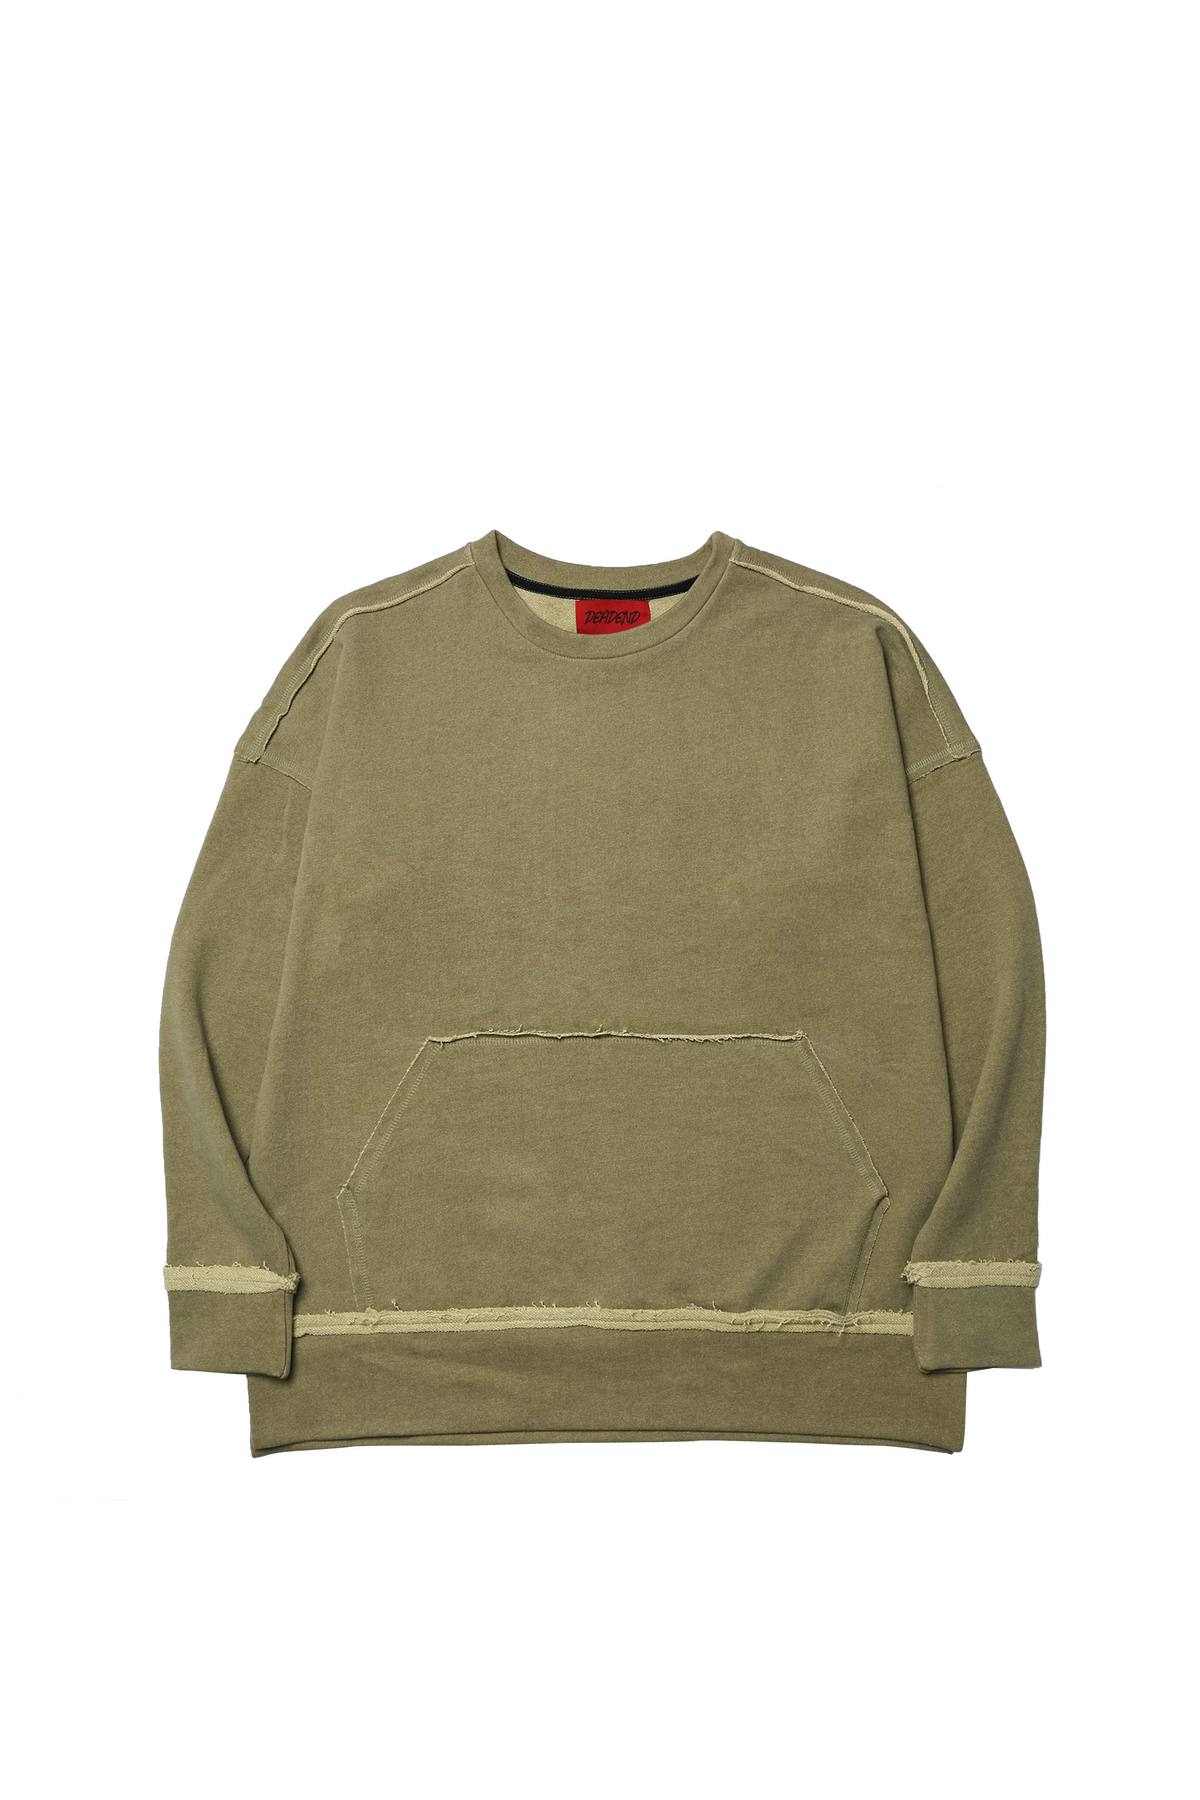 KHAKI RAW EDGE SWEAT SHIRTS